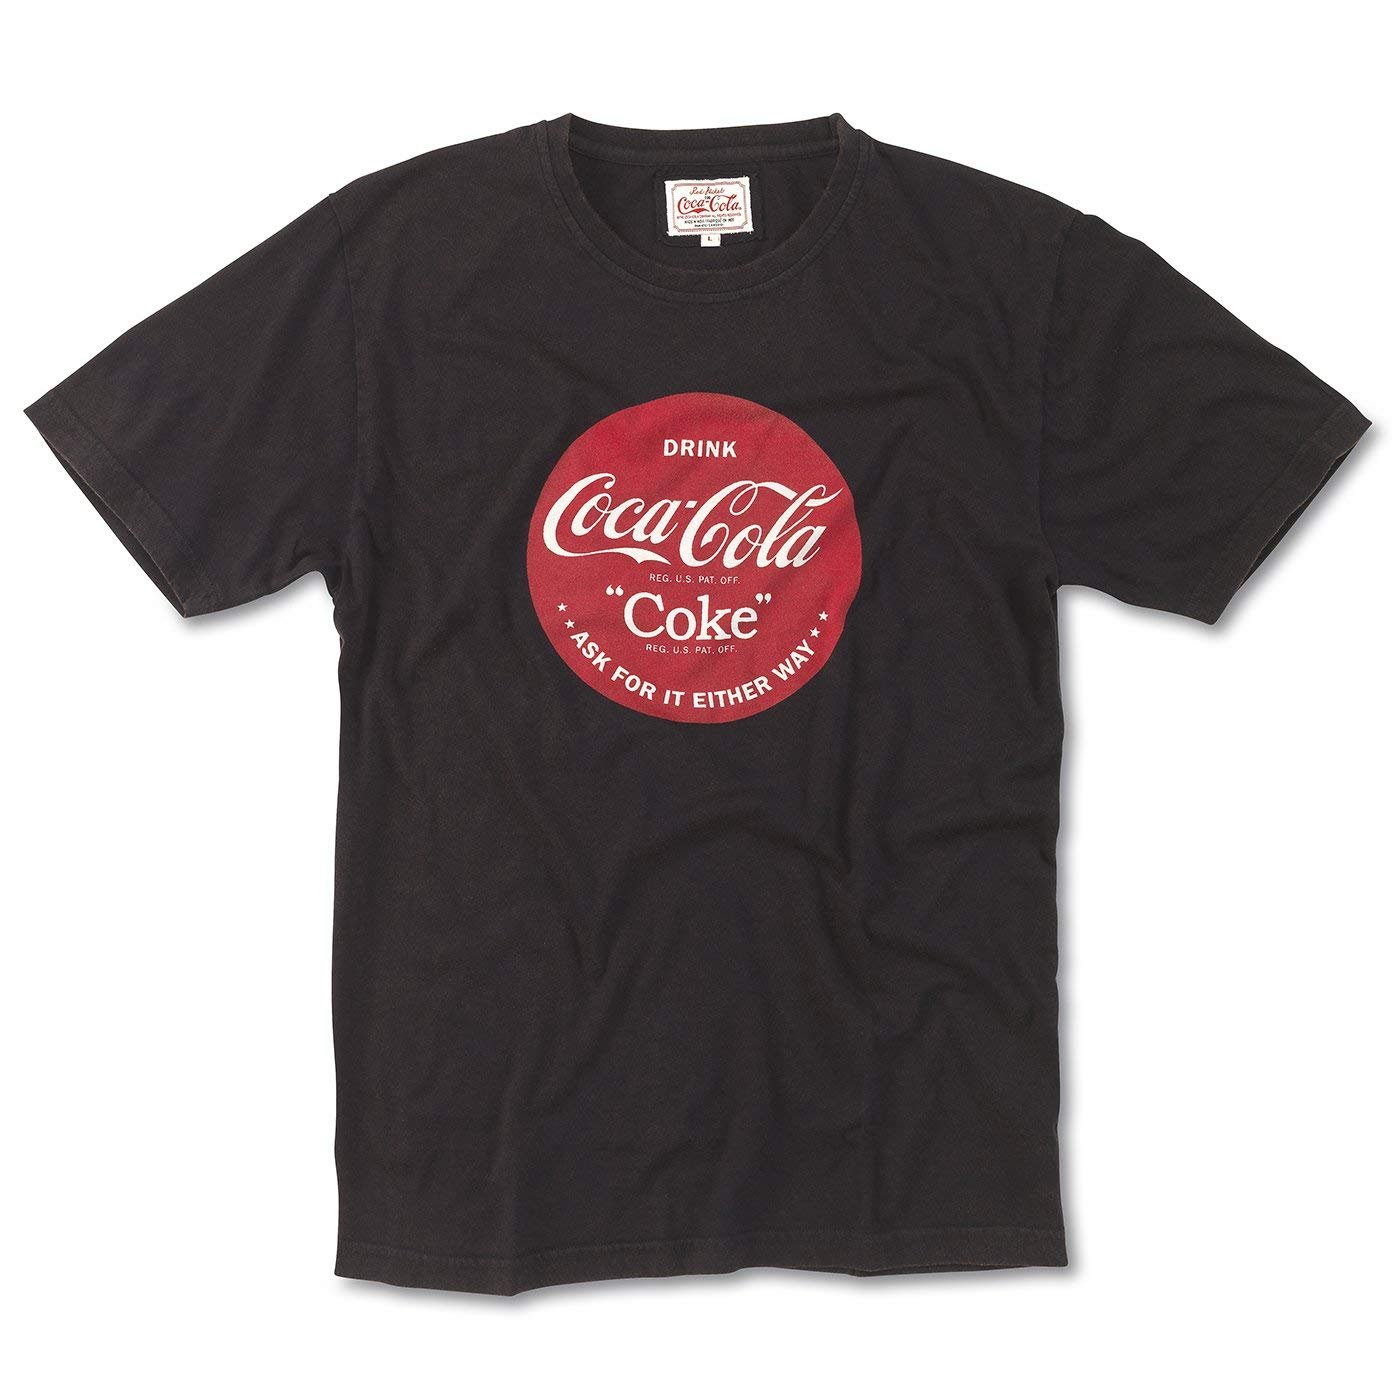 Coca-Cola Youth Small Red Long Sleeve 100/% Cotton Tee T-shirt Child Children